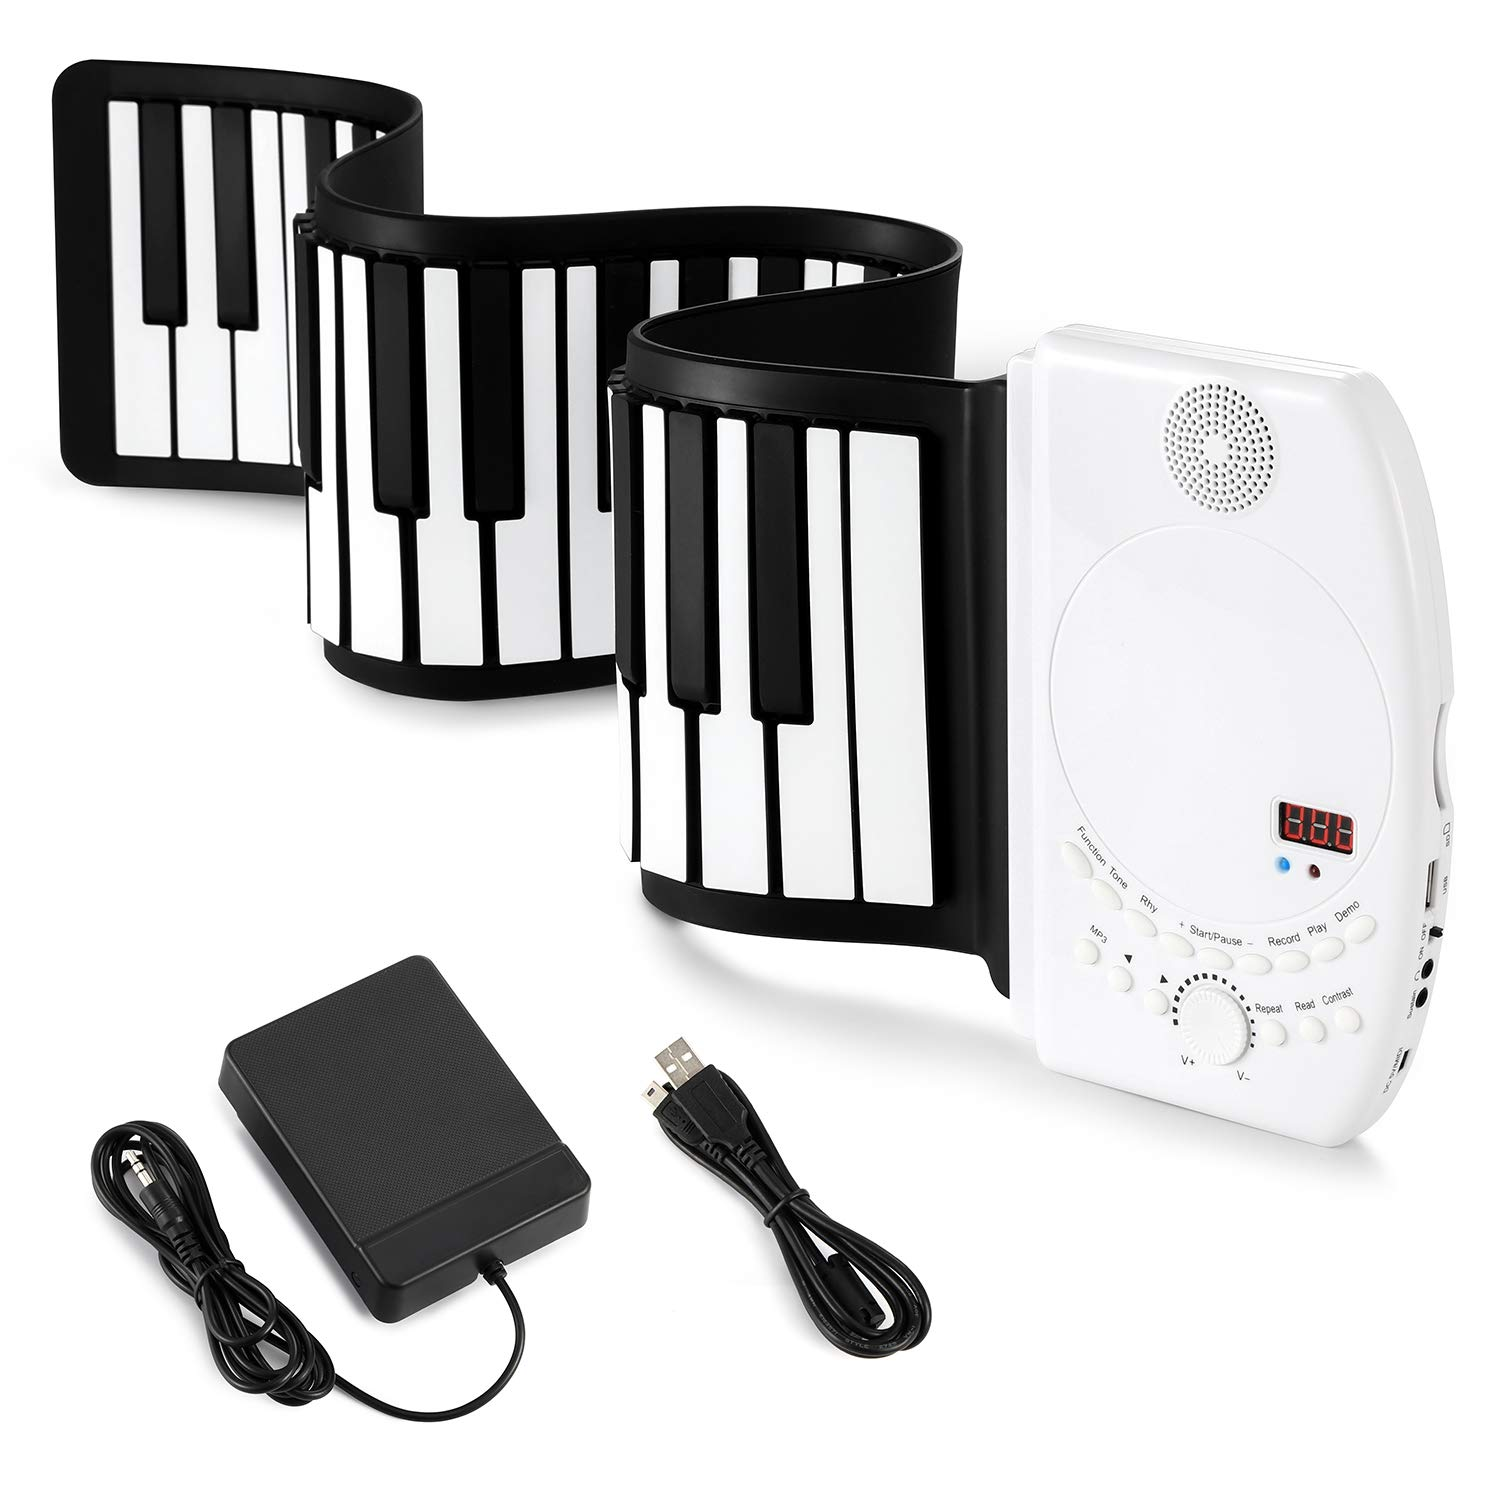 Donner Roll Up Piano Keyboard, 61 Keys Portable for Kids Beginners or Finger Strength Exercises with Sustain Pedal White by Donner